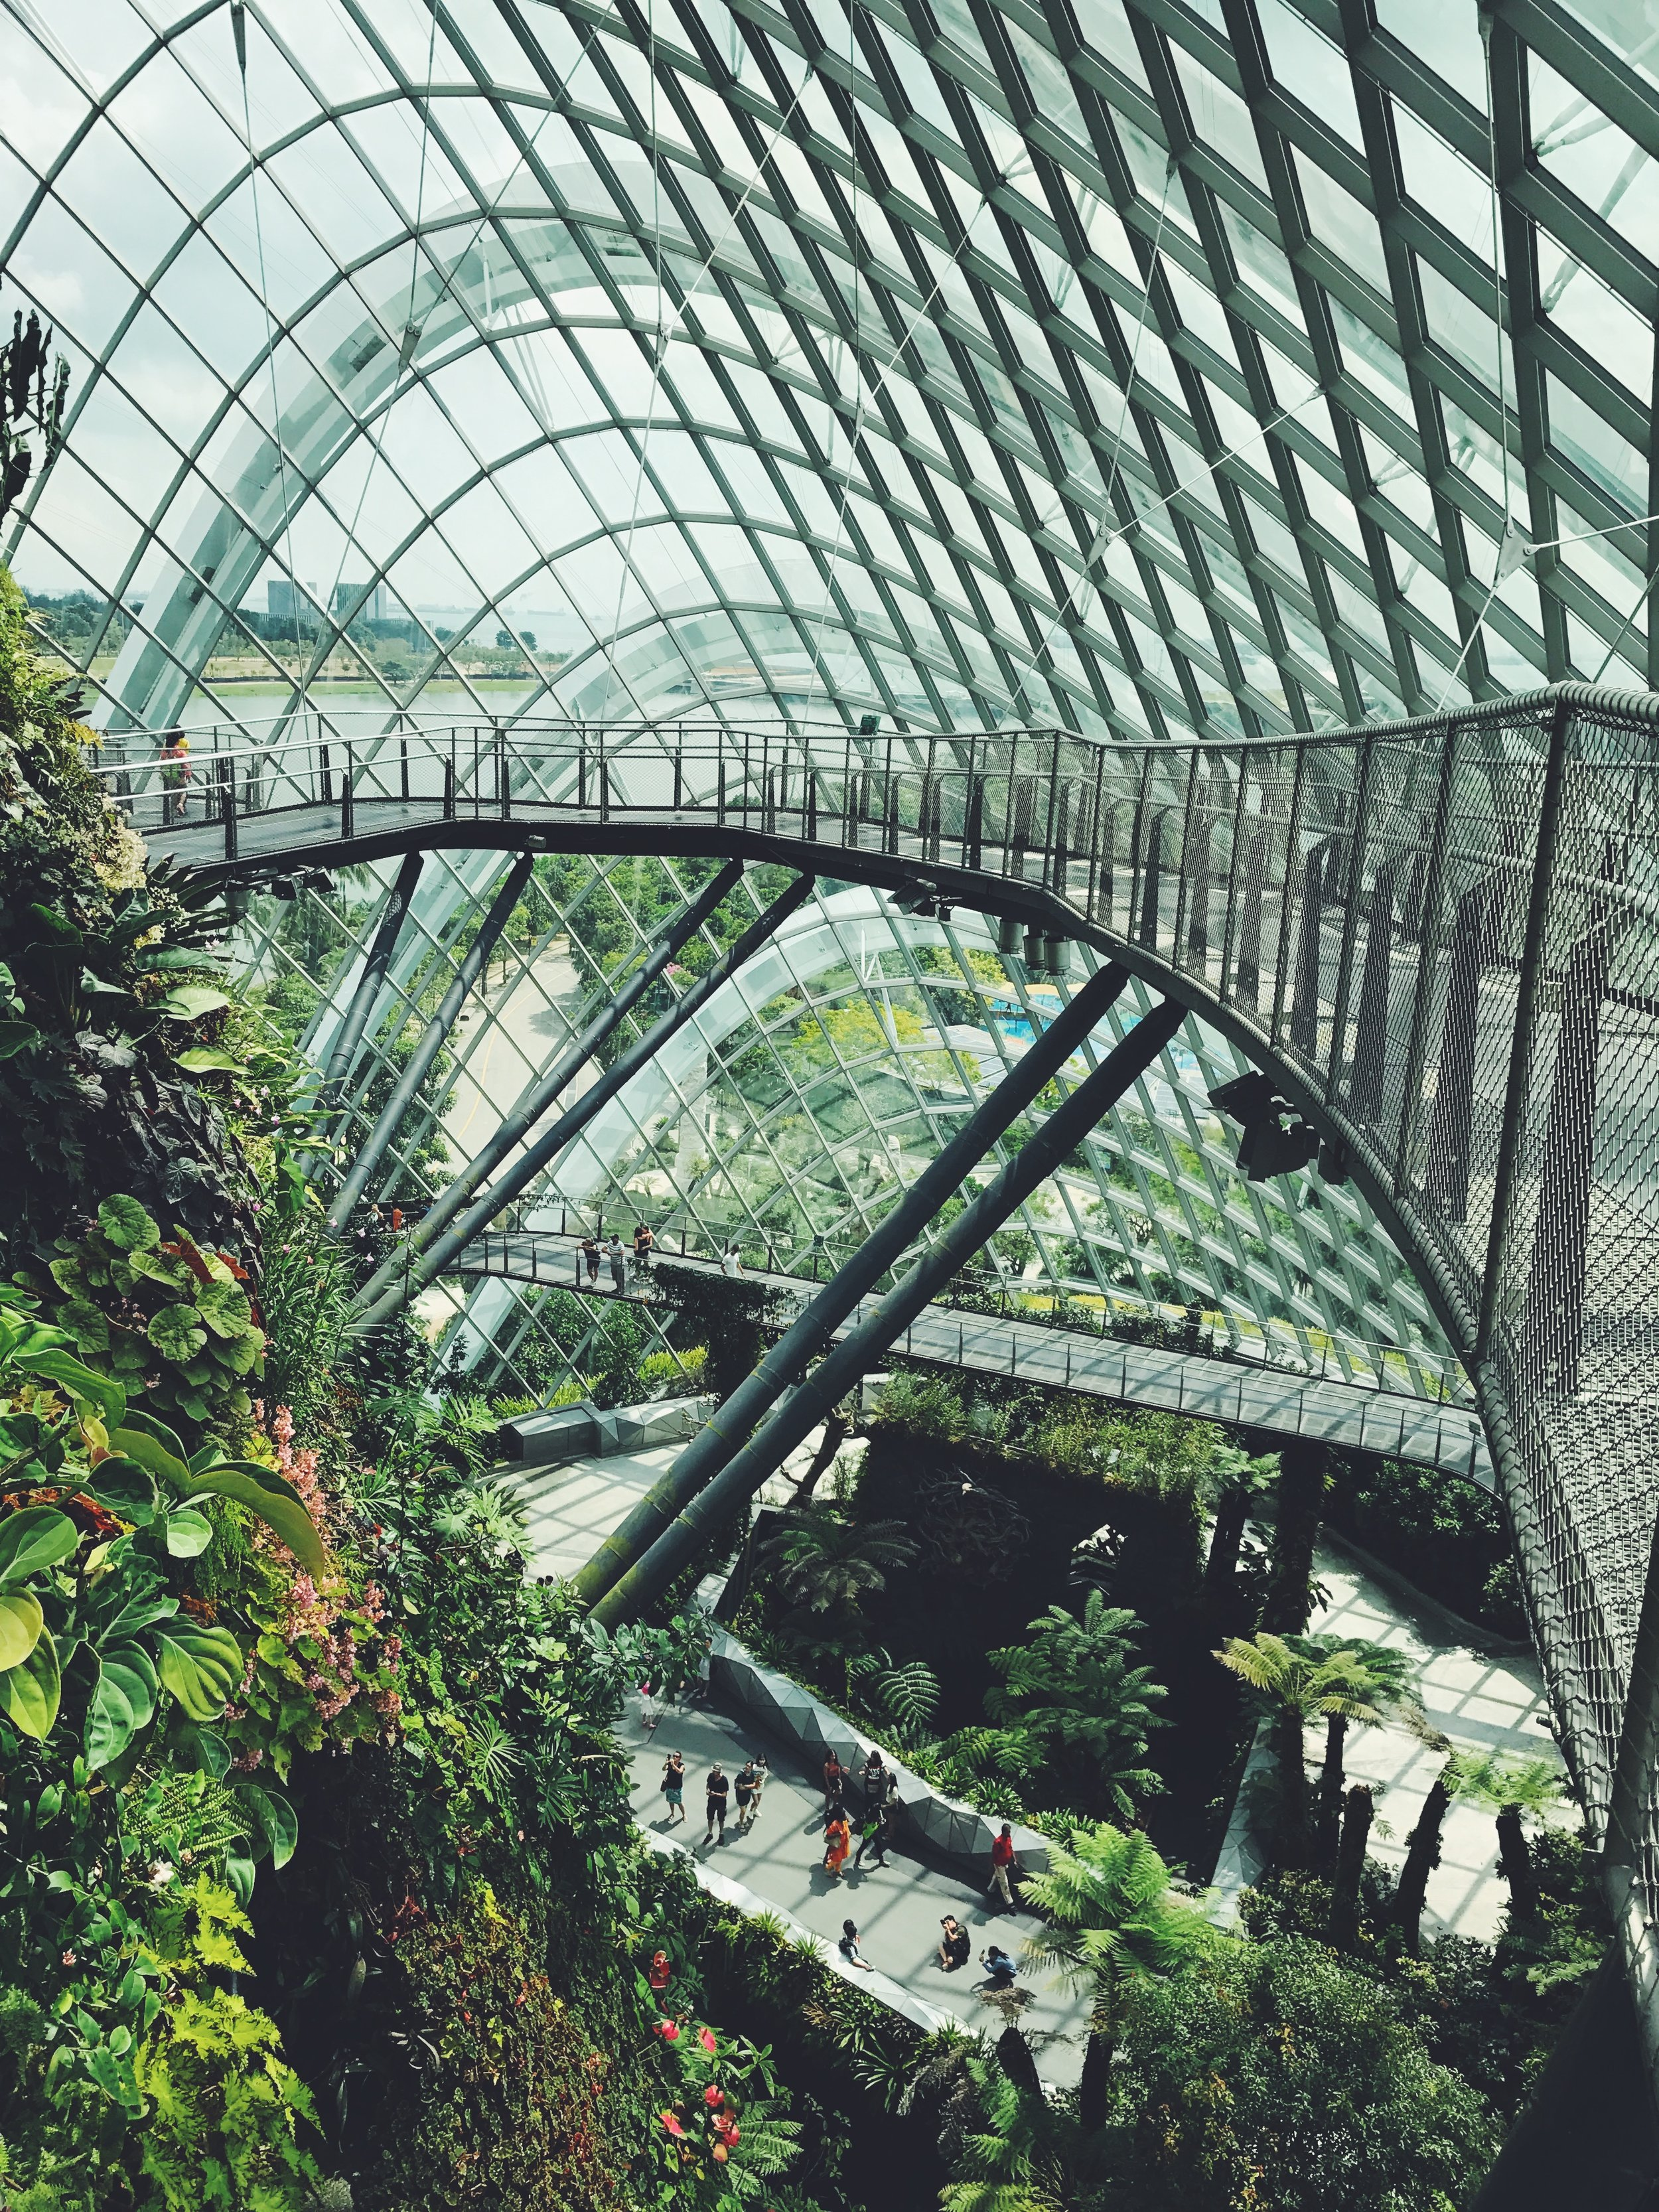 The Cloud Dome in Gardens by the Bay - after (F2 filter)